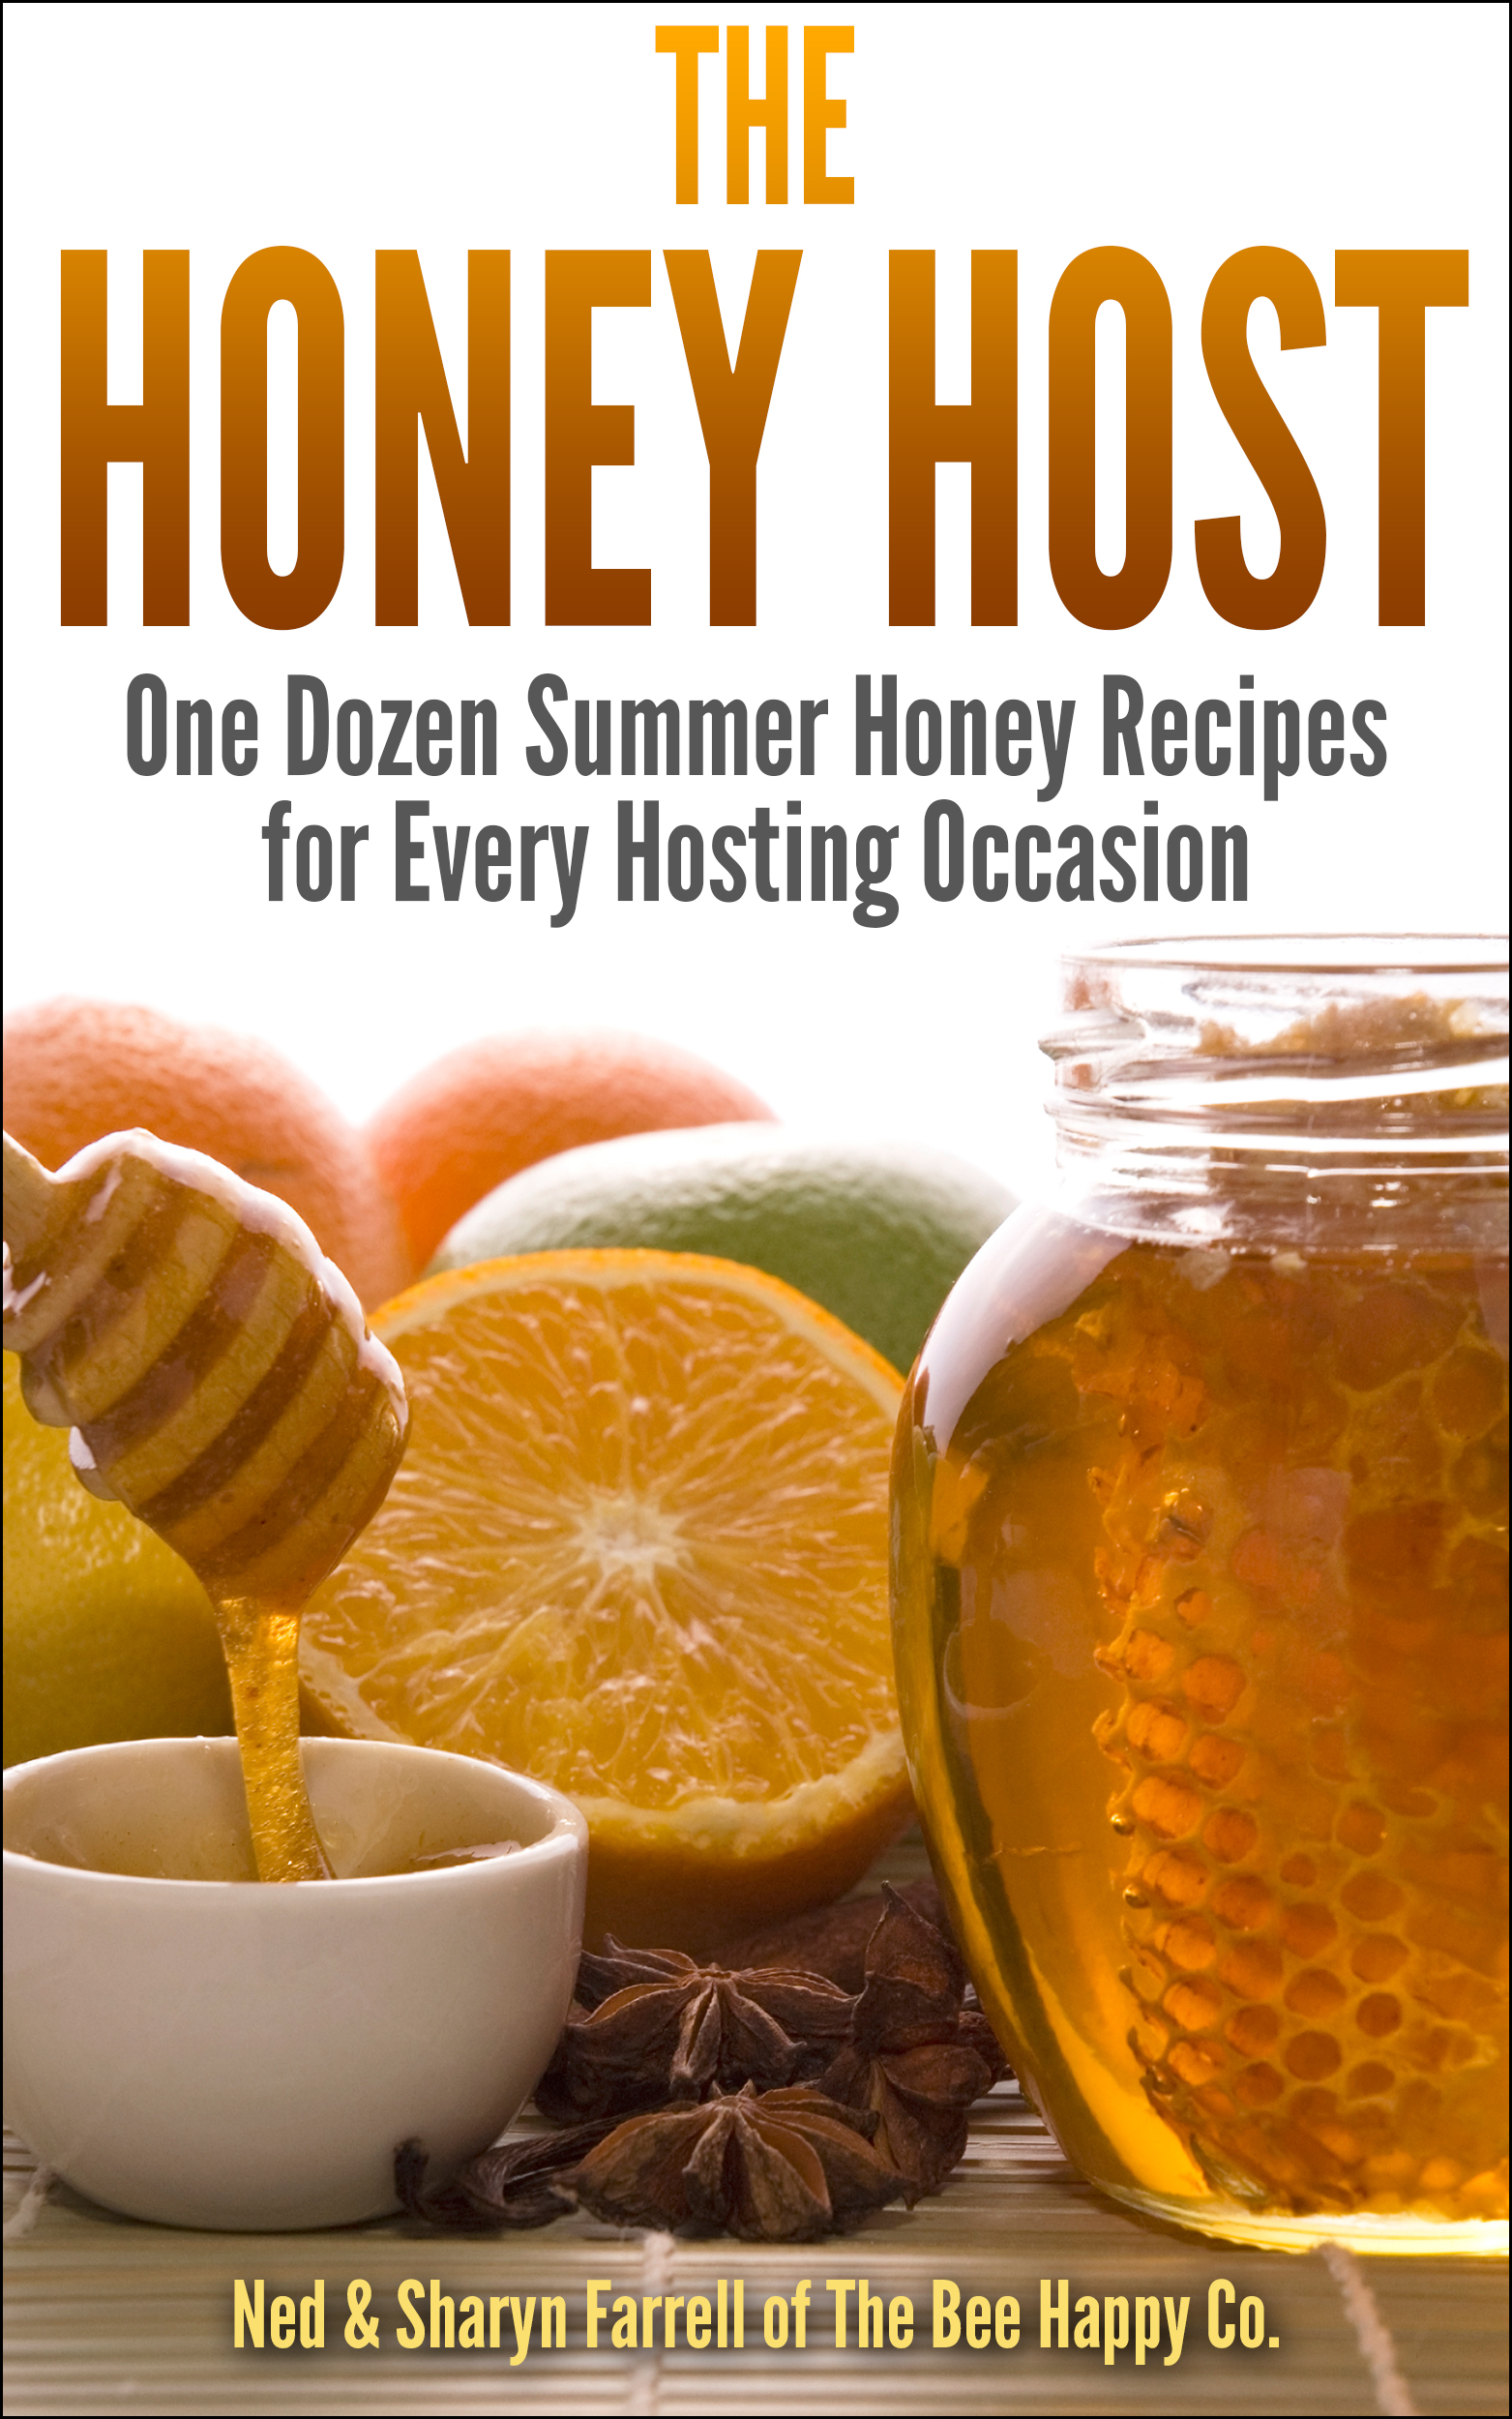 One Dozen Summer Honey recipes